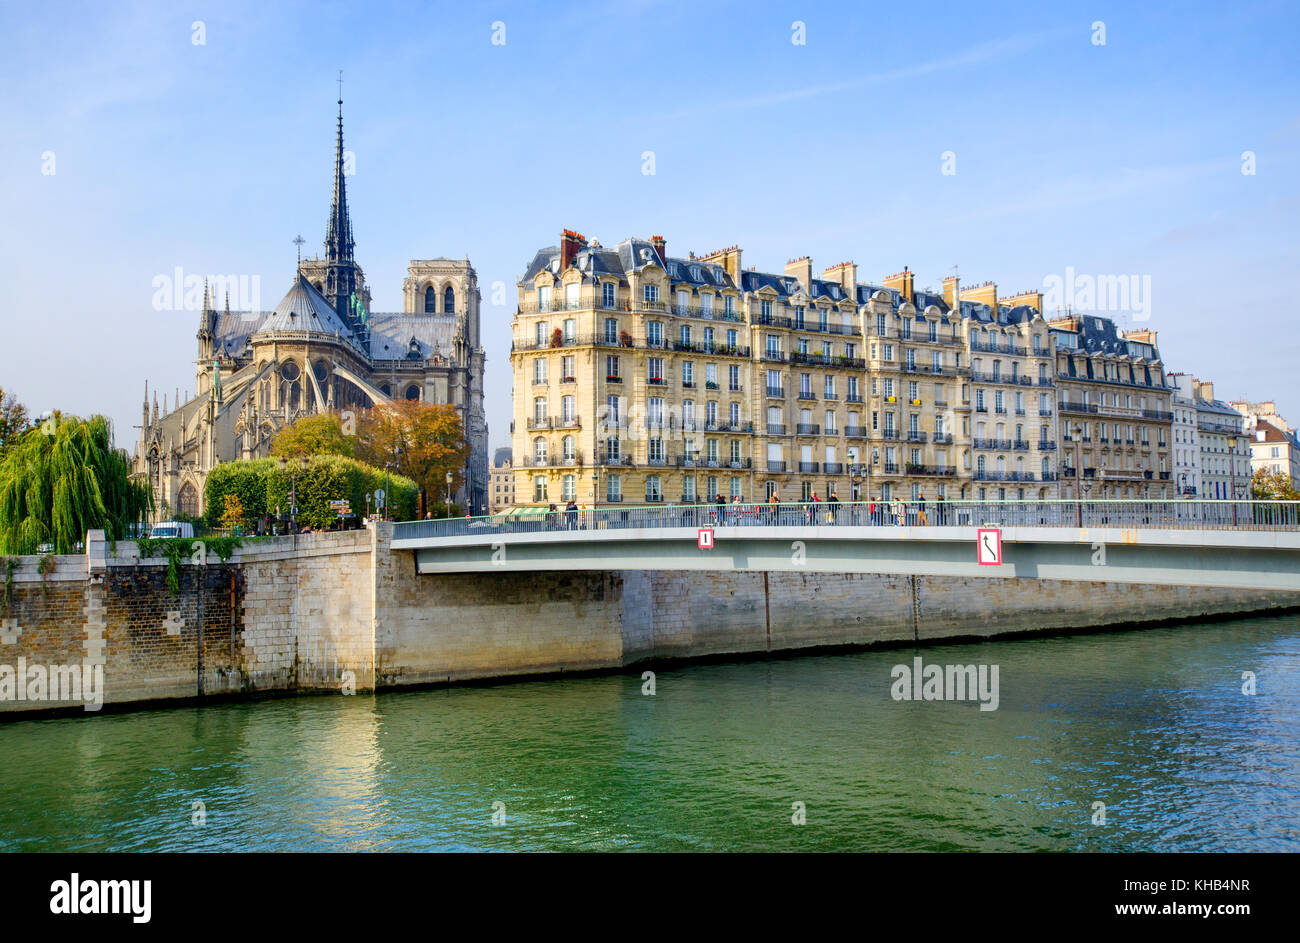 Paris, France. Notre Dame, Pont Saint-Louis, houses on the Quai aux Fleurs and the Isle de la Cite seen from Isle - Stock Image